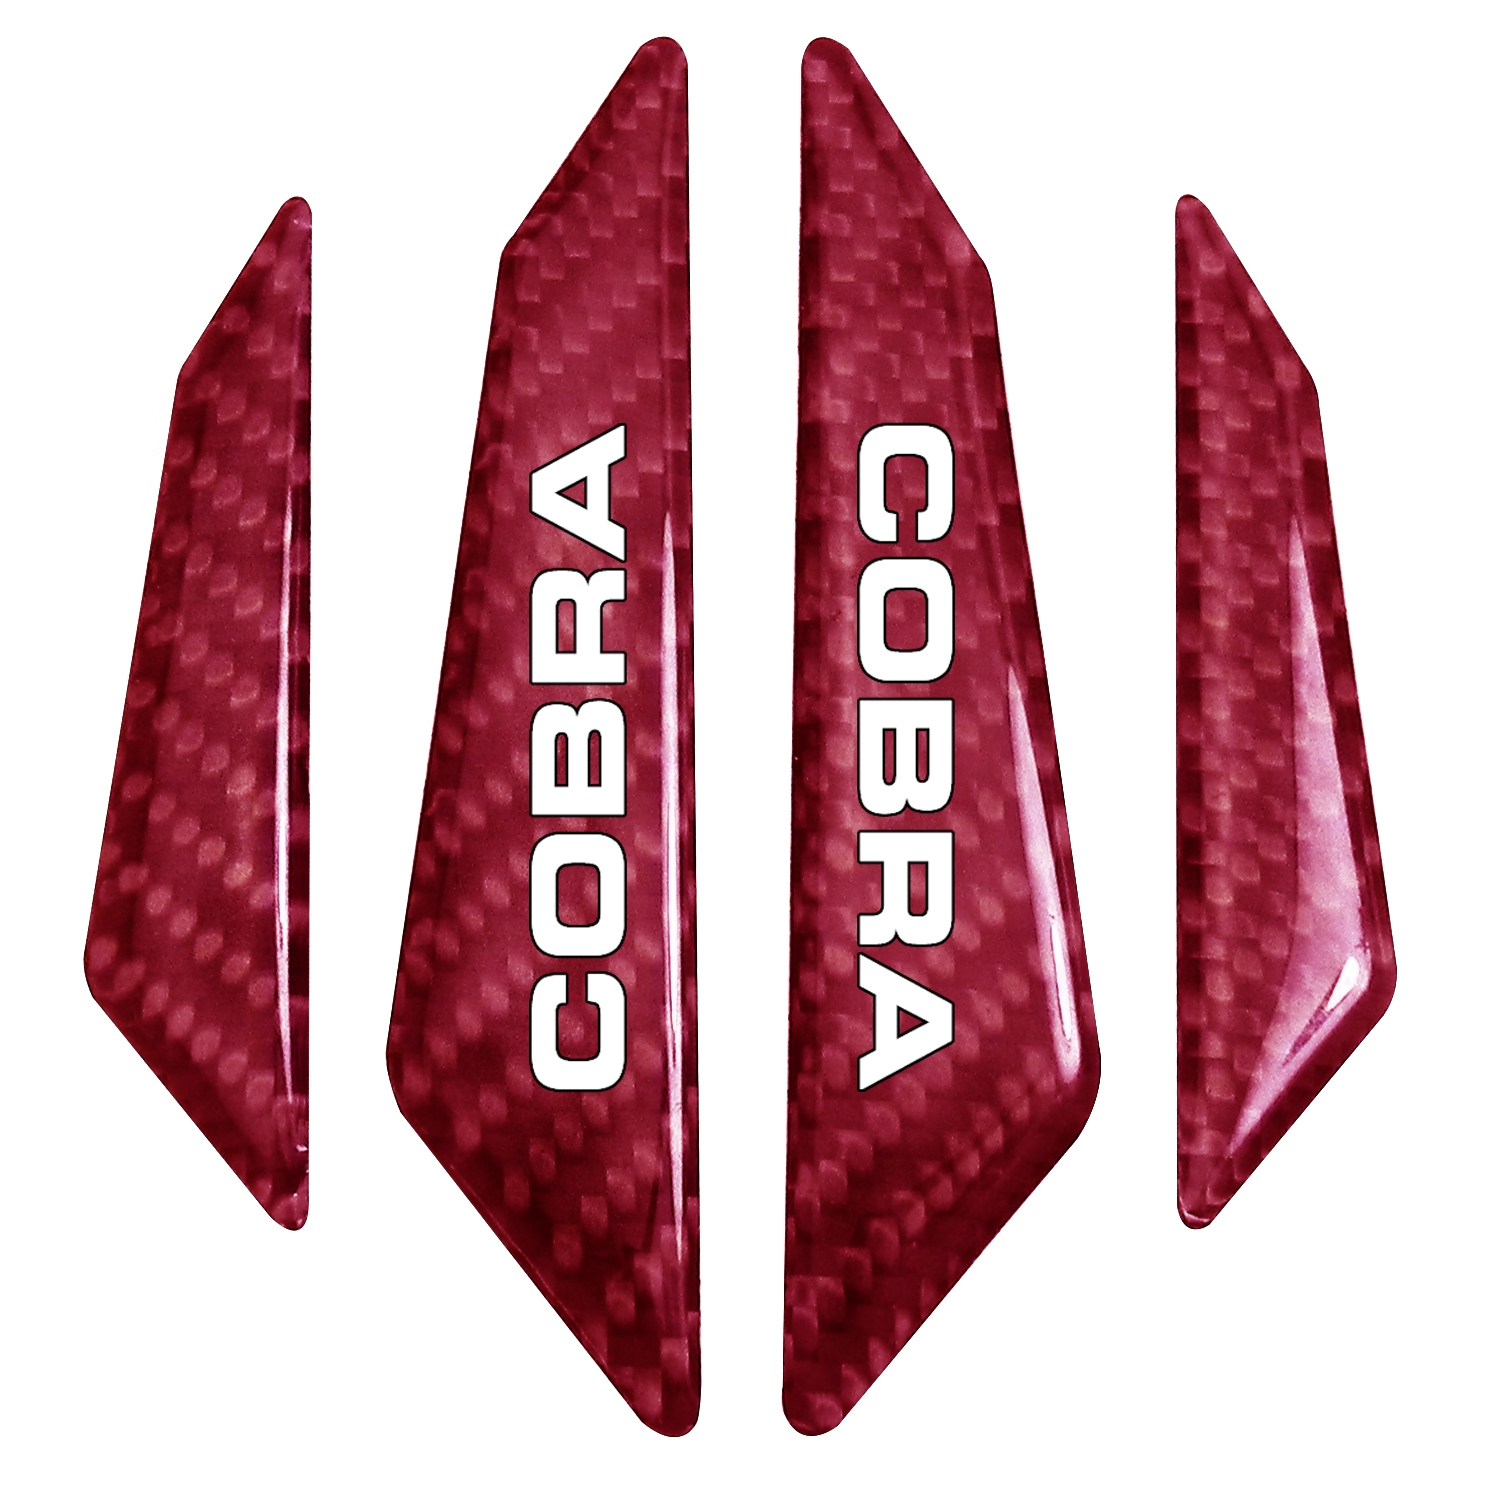 Ford Mustang Cobra Real Red Carbon Fiber Door Edge Guard Decal